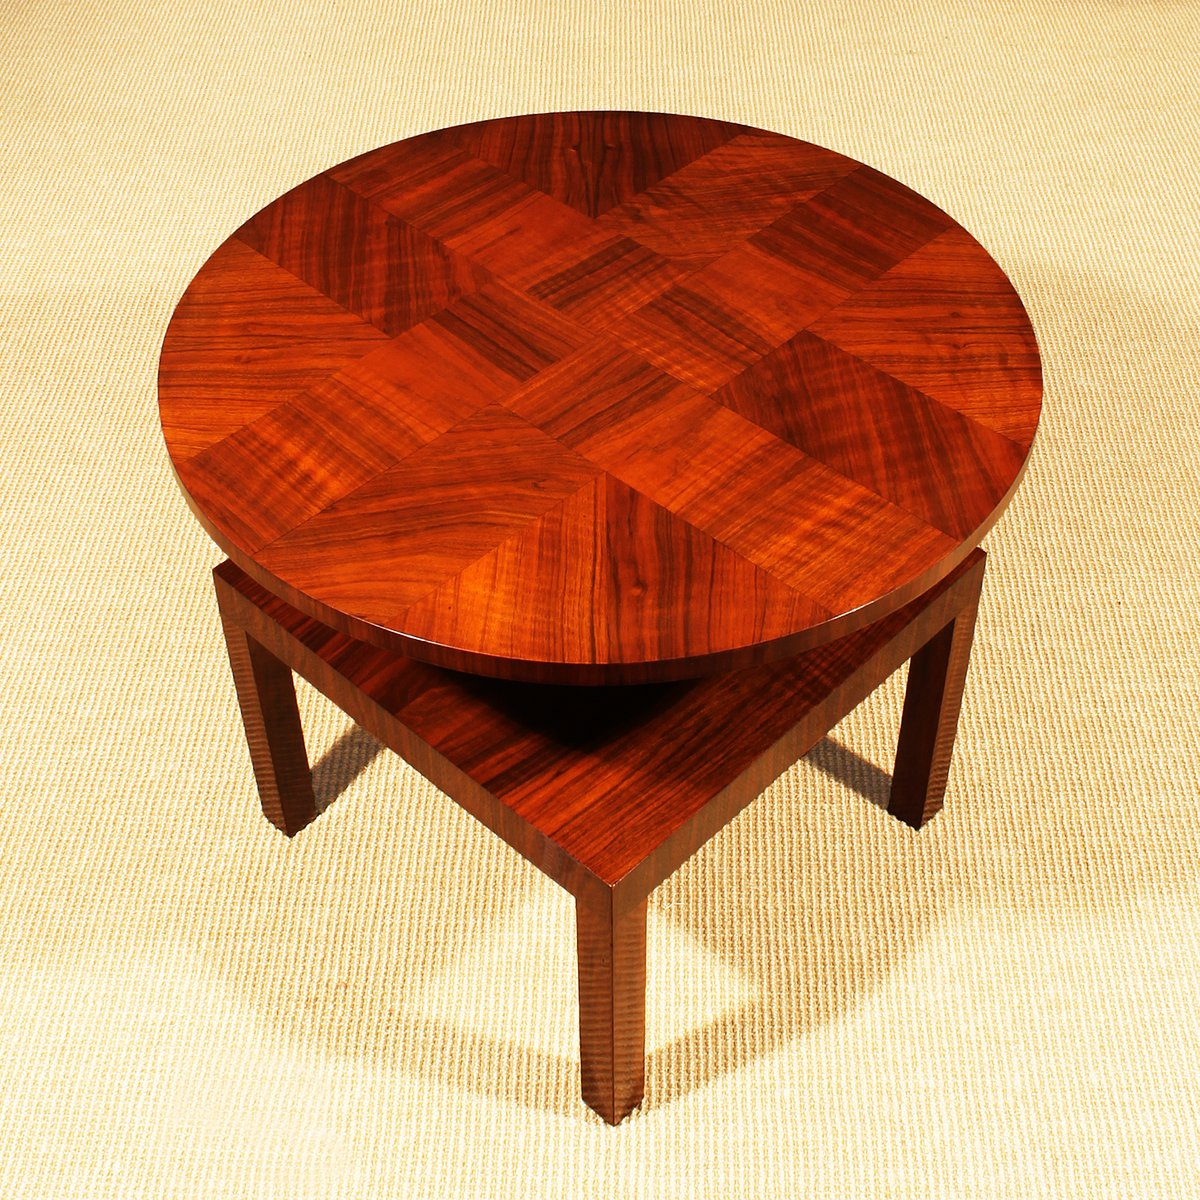 french art deco cubist side table 1930s for sale at pamono. Black Bedroom Furniture Sets. Home Design Ideas